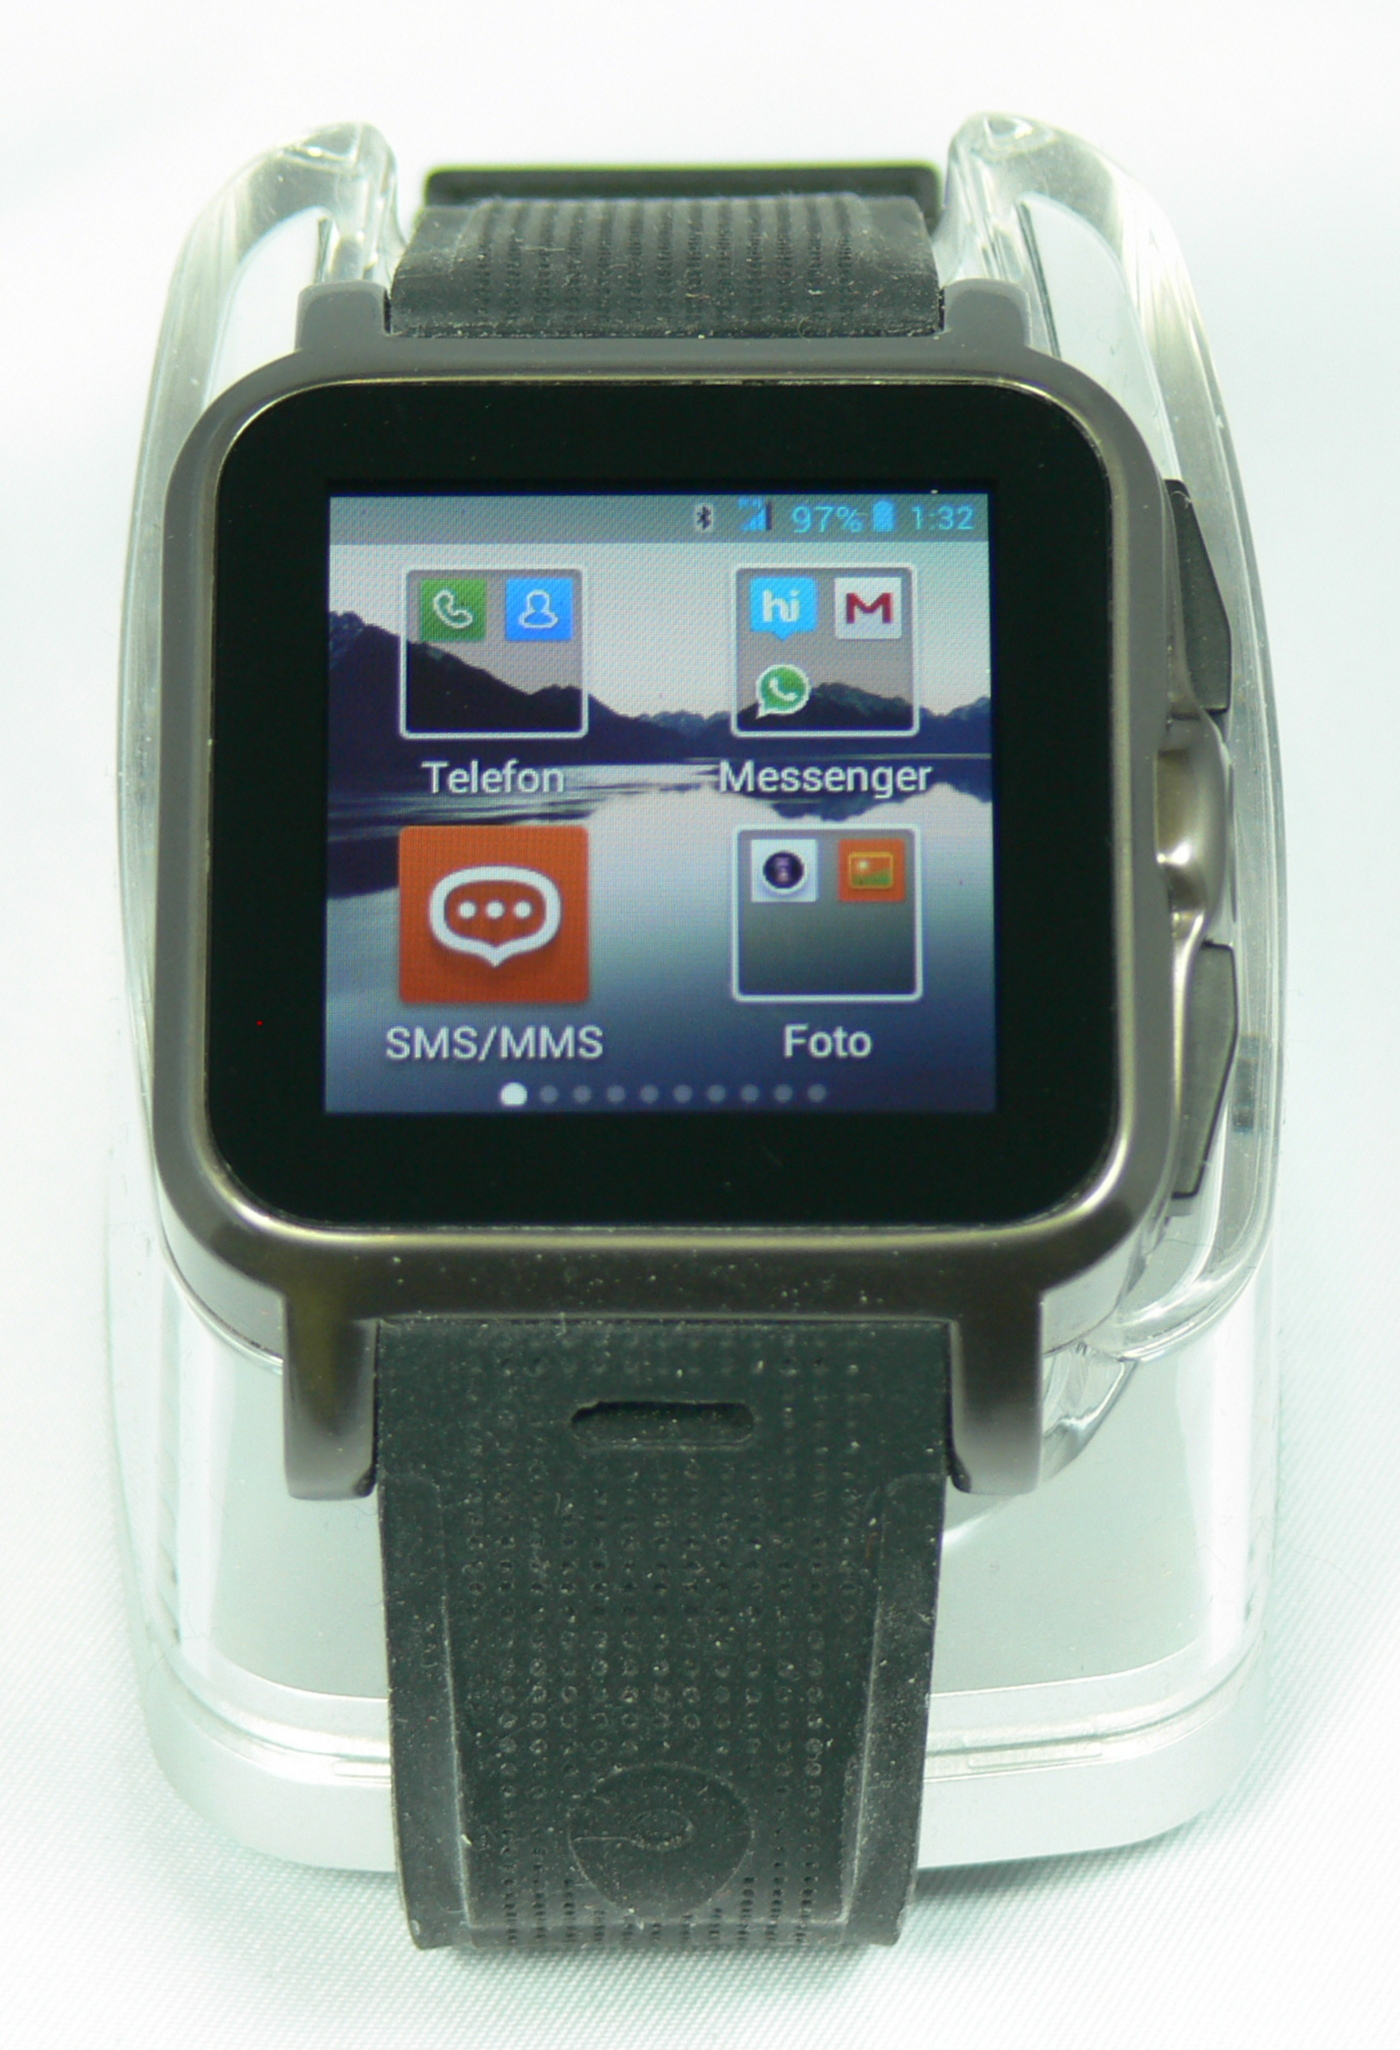 Smartphone: 1.5″-Smartwatch AW414Go mit Android 4.x, BT, WiFi, Cam